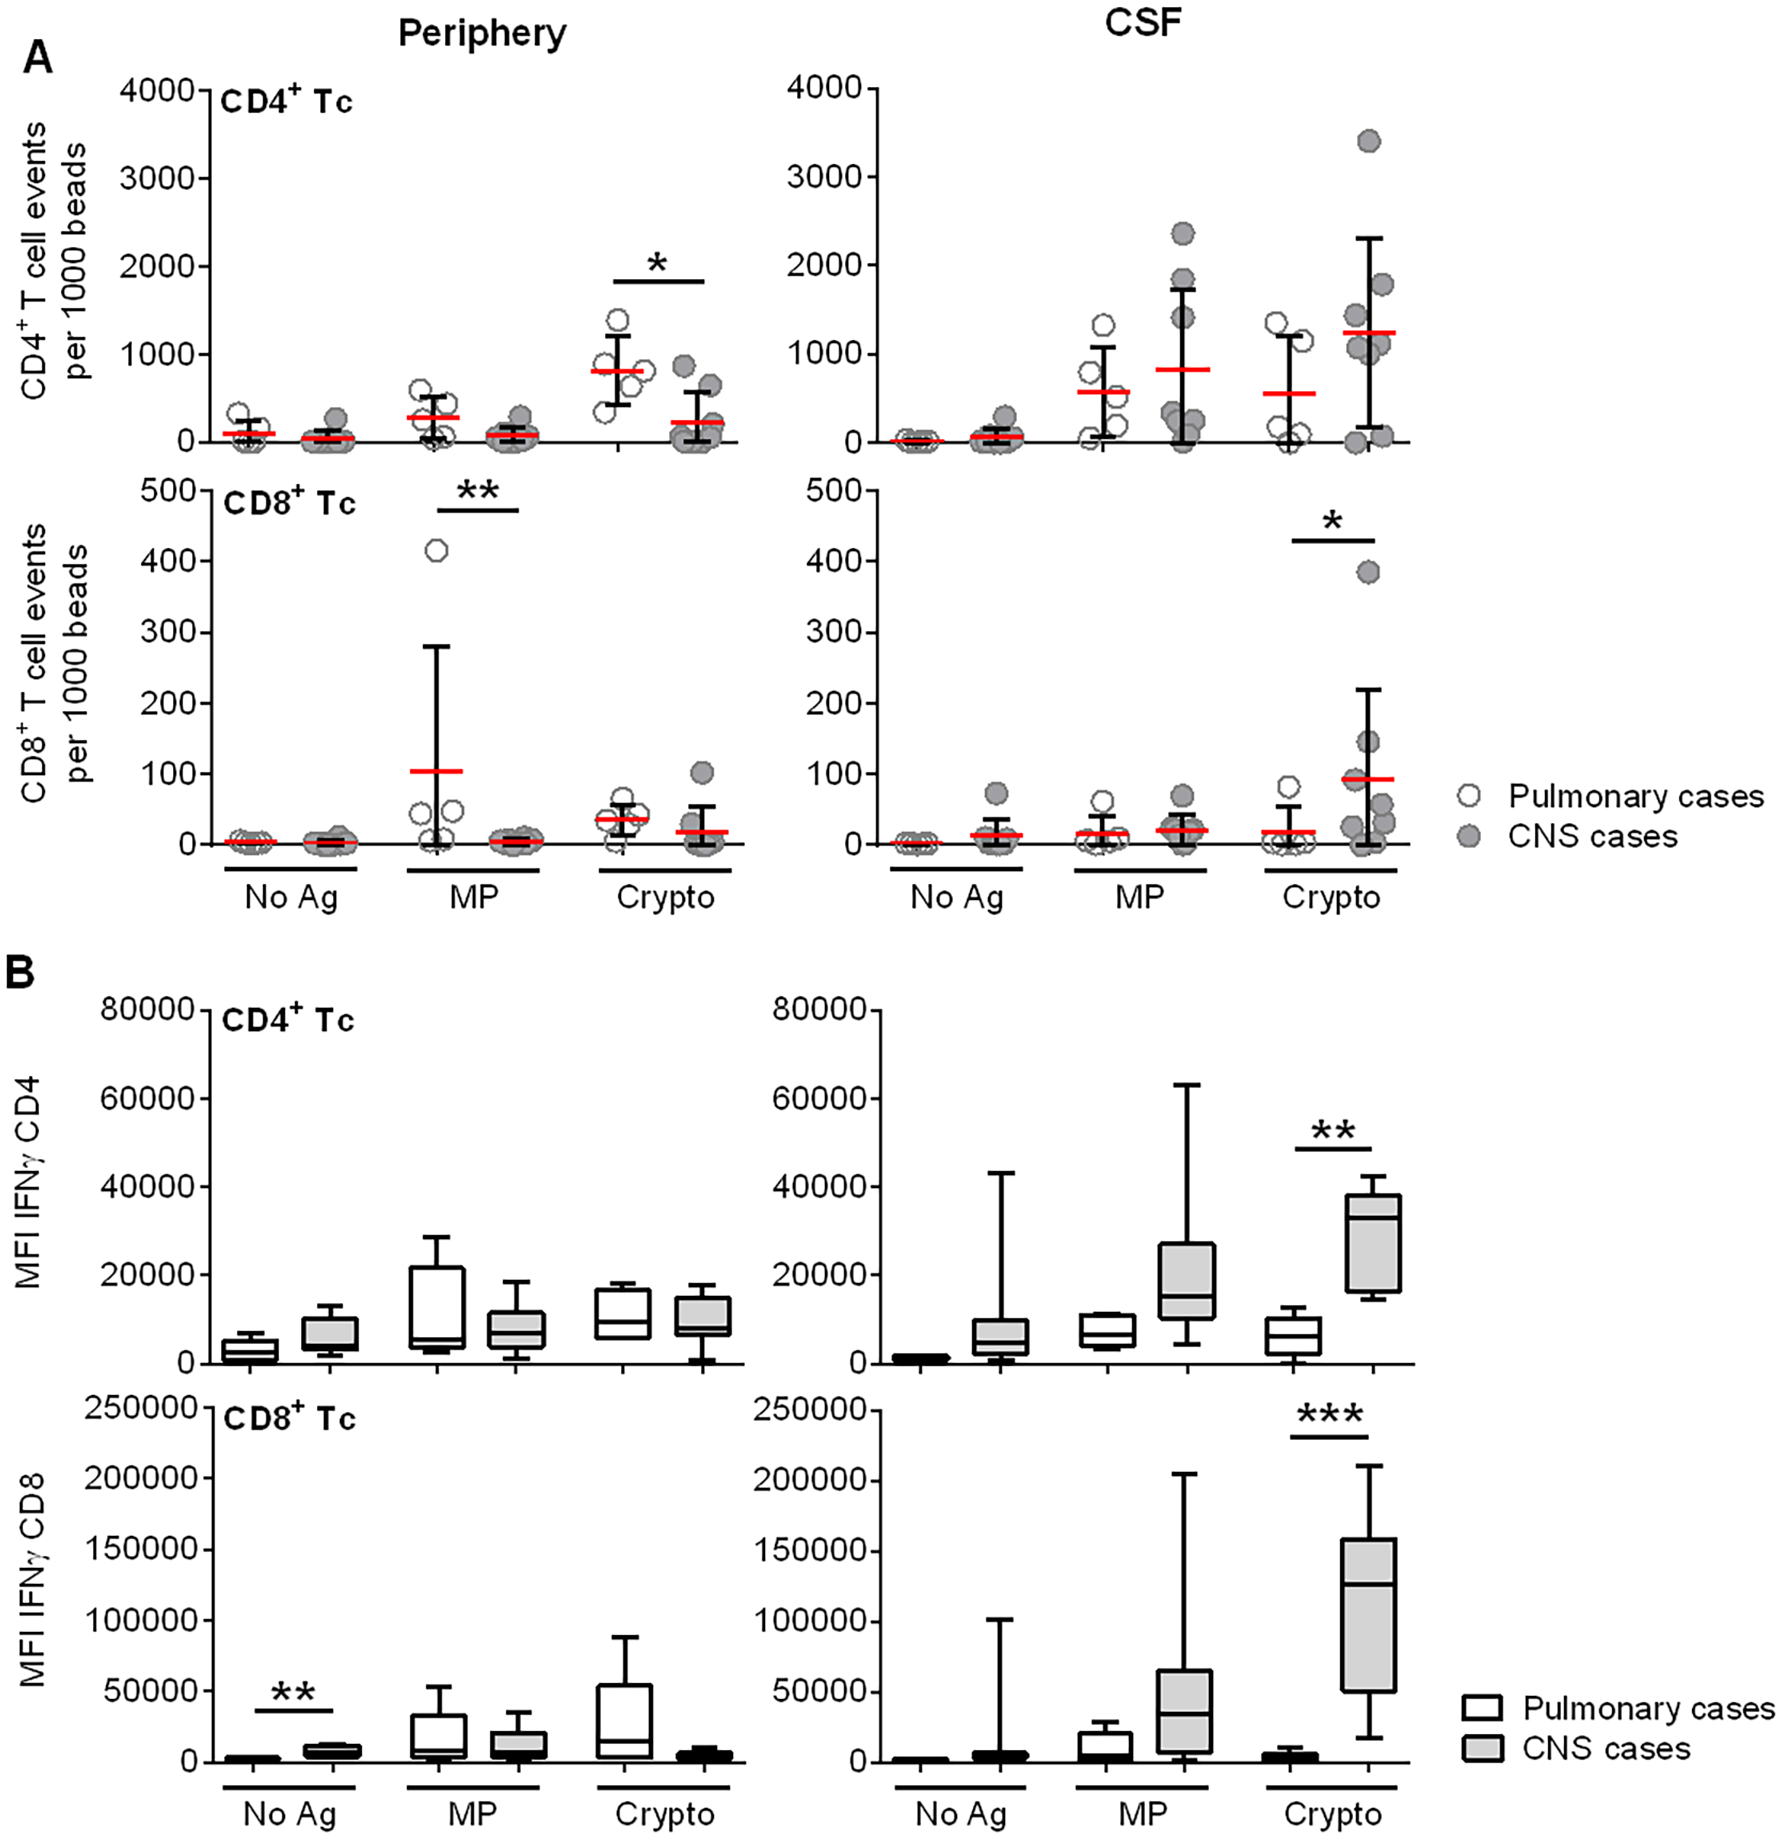 <i>Ex vivo</i> cryptococcal antigenic stimulation by pulsed autologous mature dendritic cells (mDCs) co-cultured with T lymphocytes from CSF or blood demonstrates compartmentalization of immune responses in a subgroup of 8 s-CNS and 5 non-CNS patients.